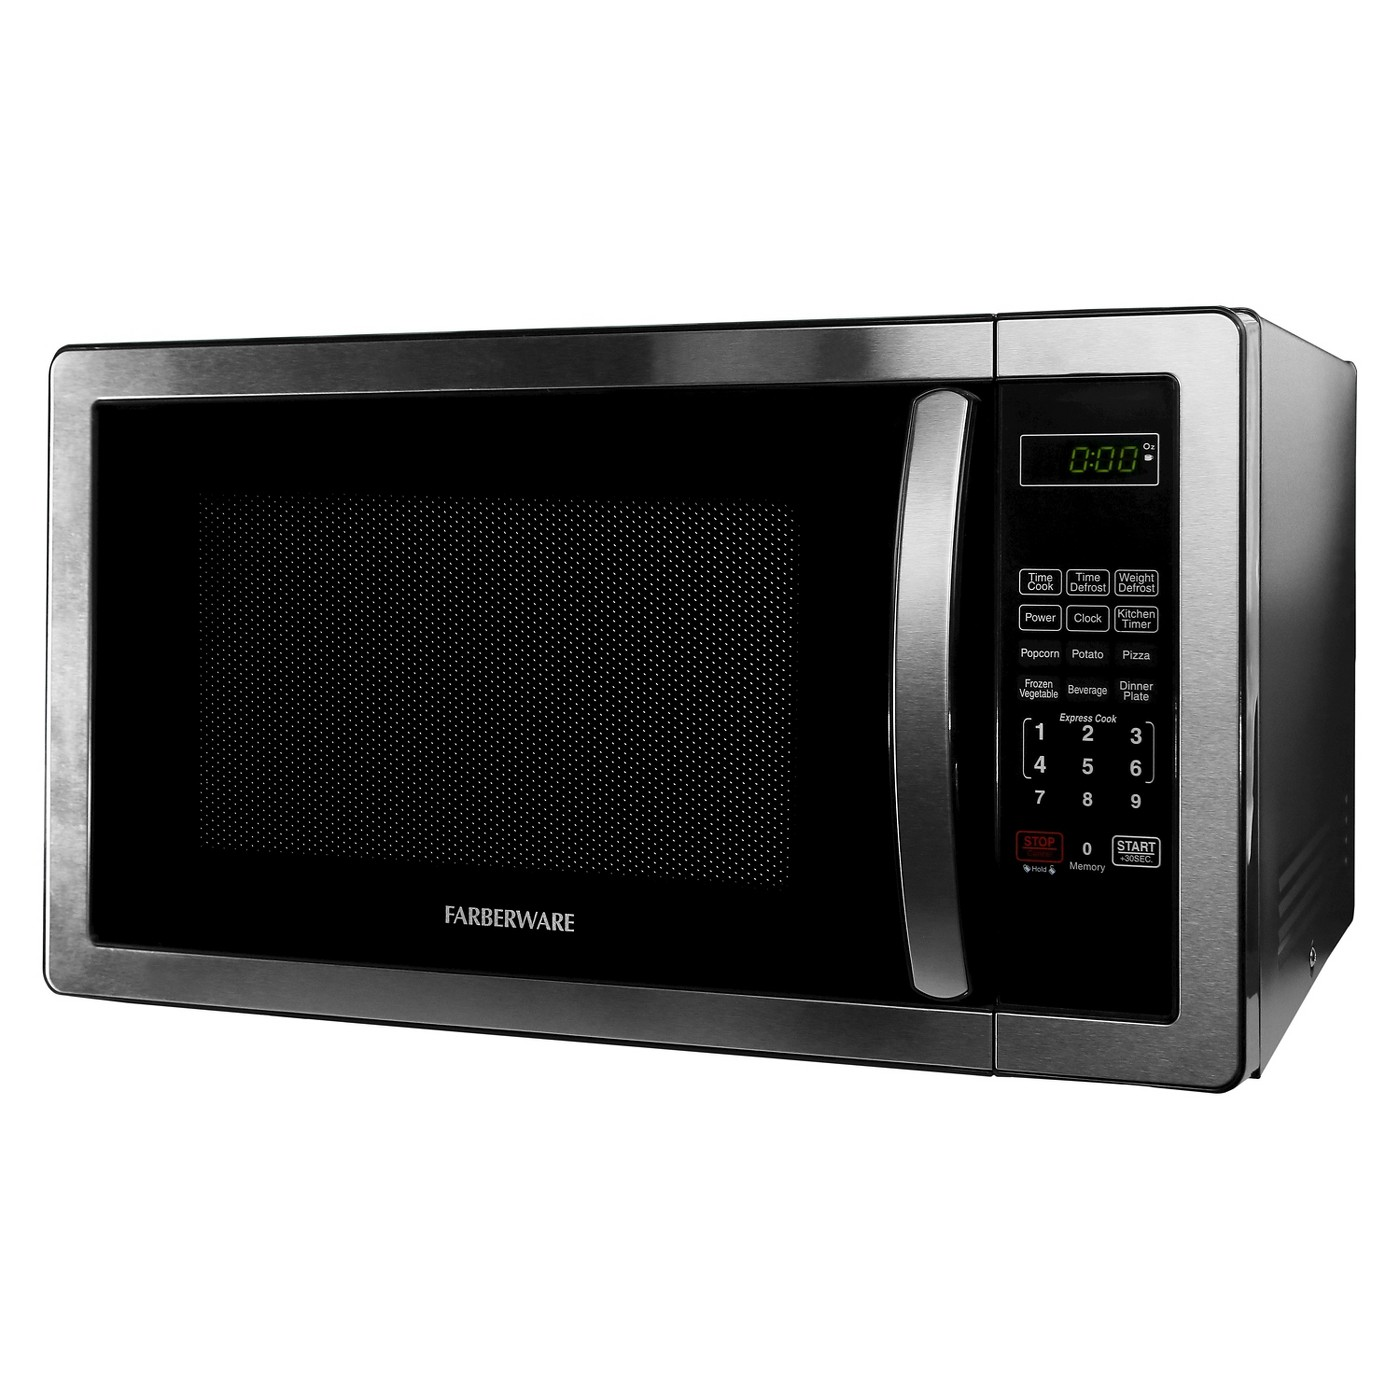 Best Microwave Under 100 2019 Reviews Of Our Favorite